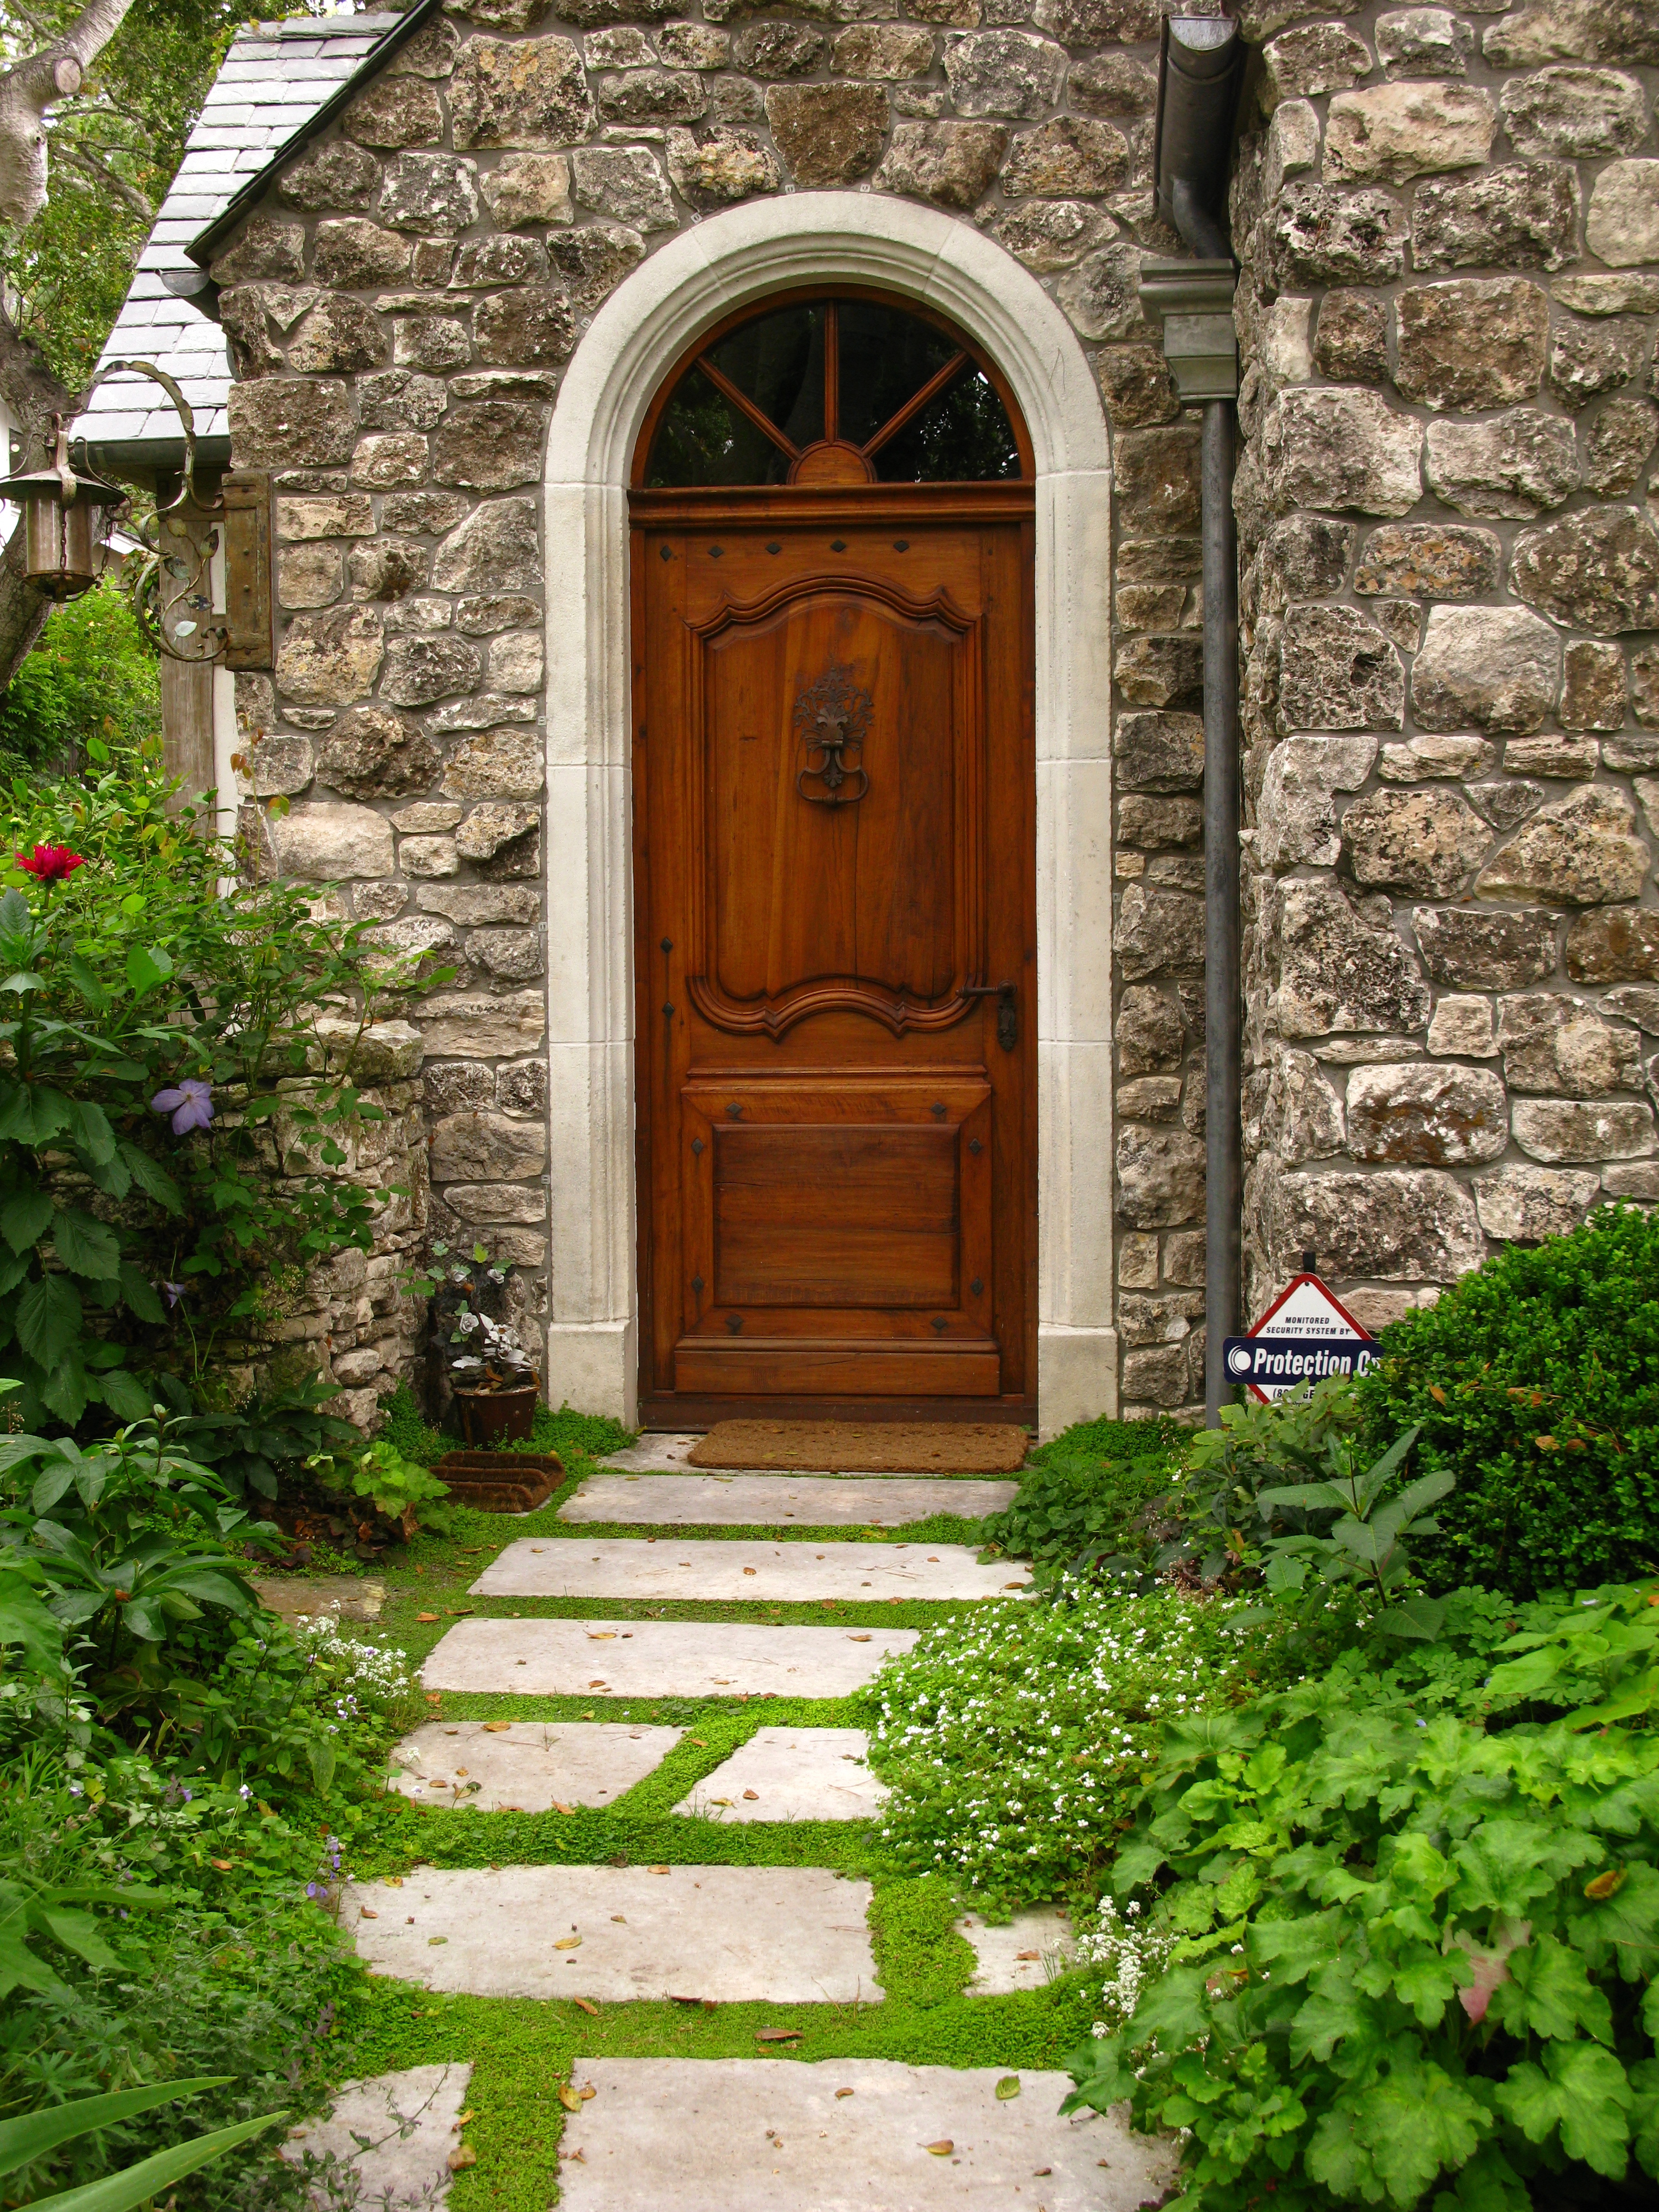 I Am Invited To Tour Biddlestone Cottage And Garden Once